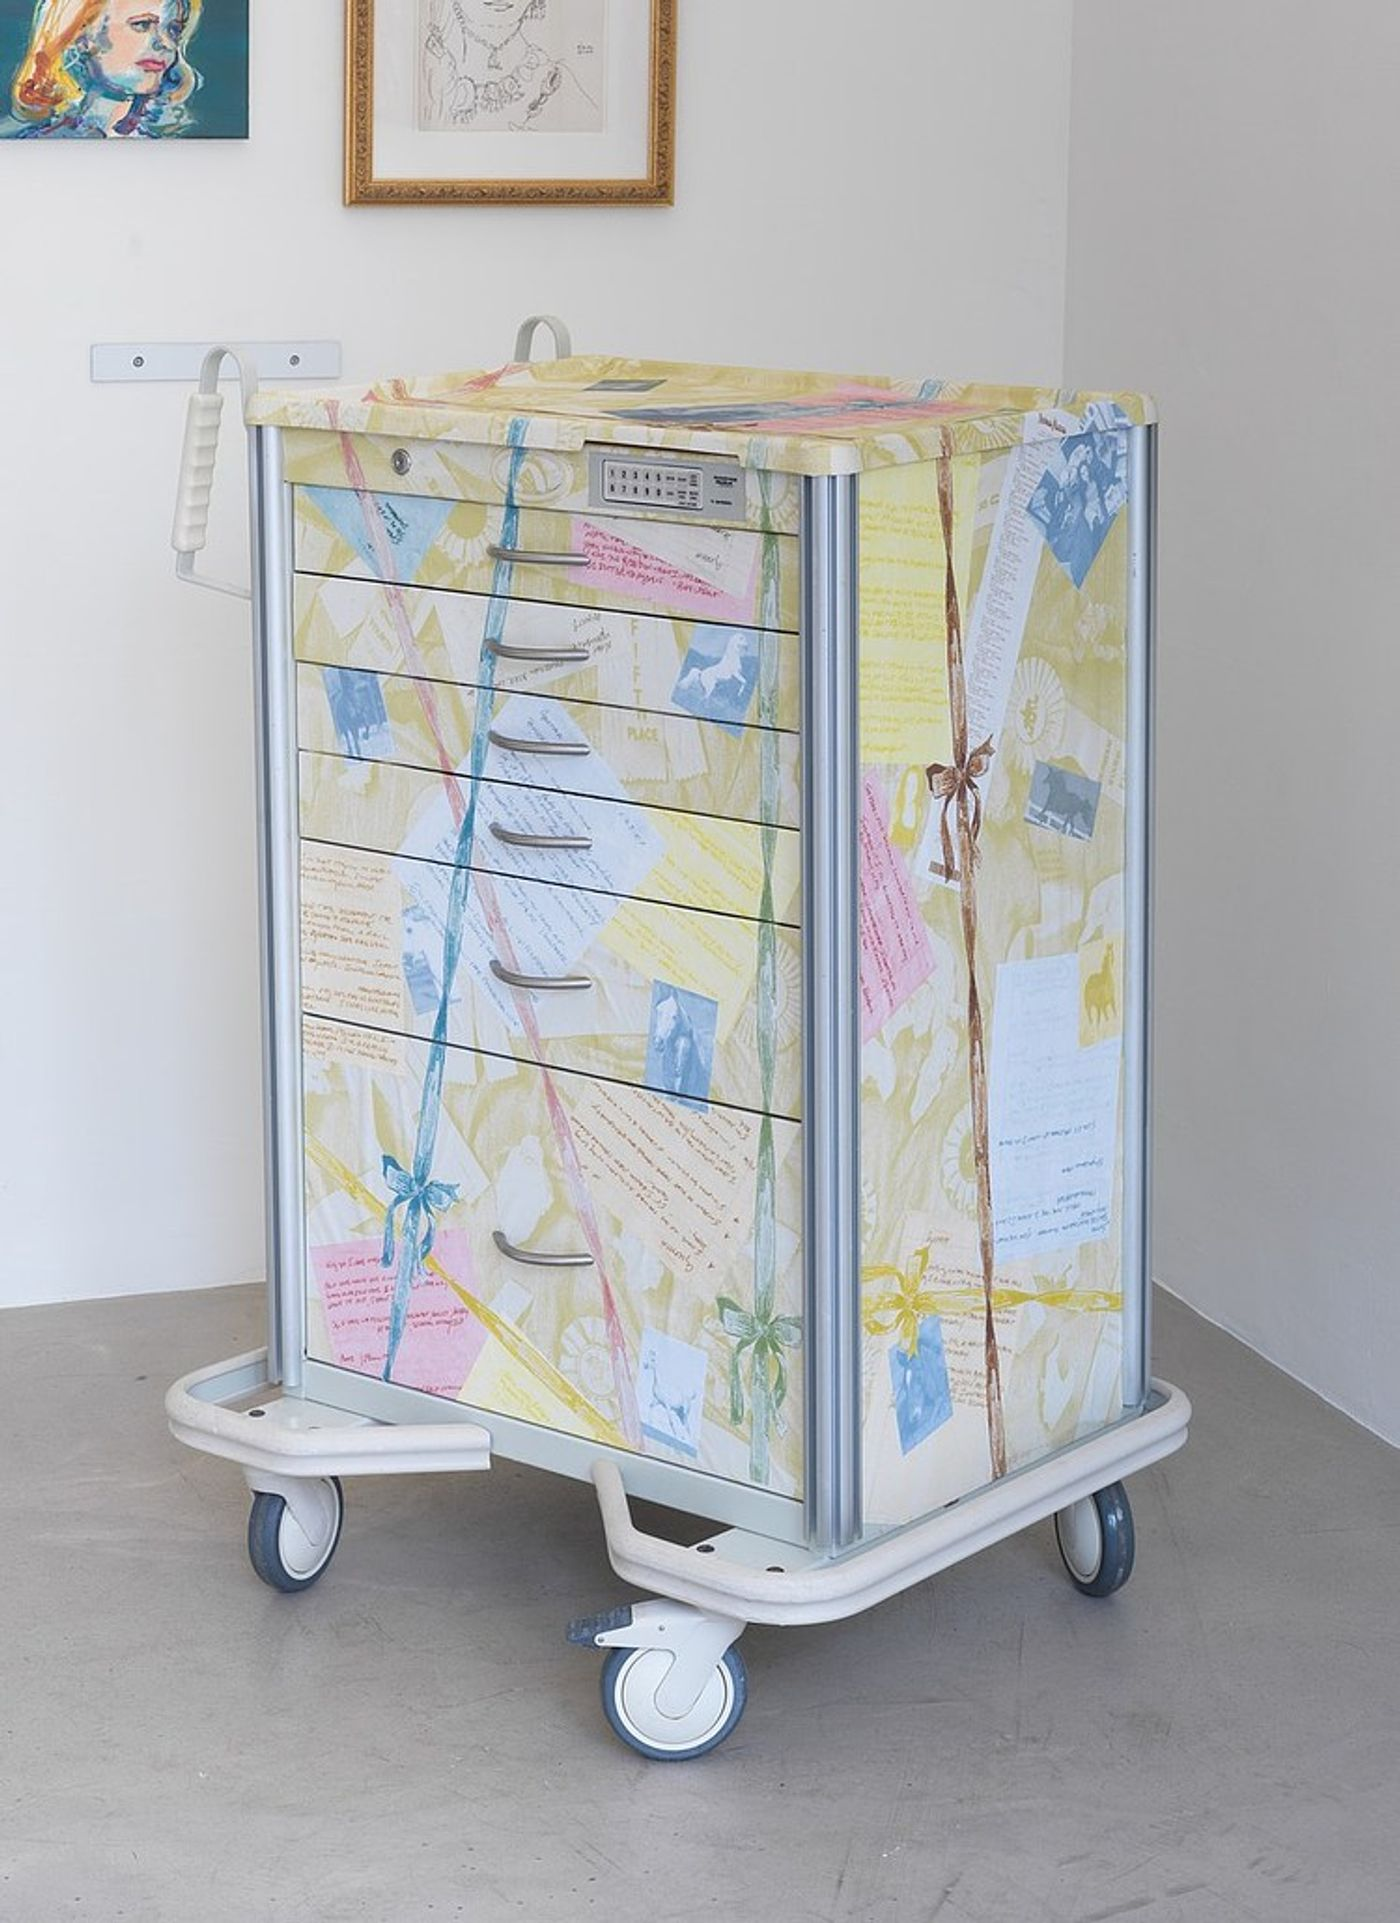 Cynthia Talmadge, Decoupaged Med Cart, 2021. Mod-Podge, notes taken by now-deceased therapist, collected horse clippings, original photographs of Eleanor Rines, medication cart, 44 x 27 x 19 in (111.8 x 68.6 x 48.3 cm).